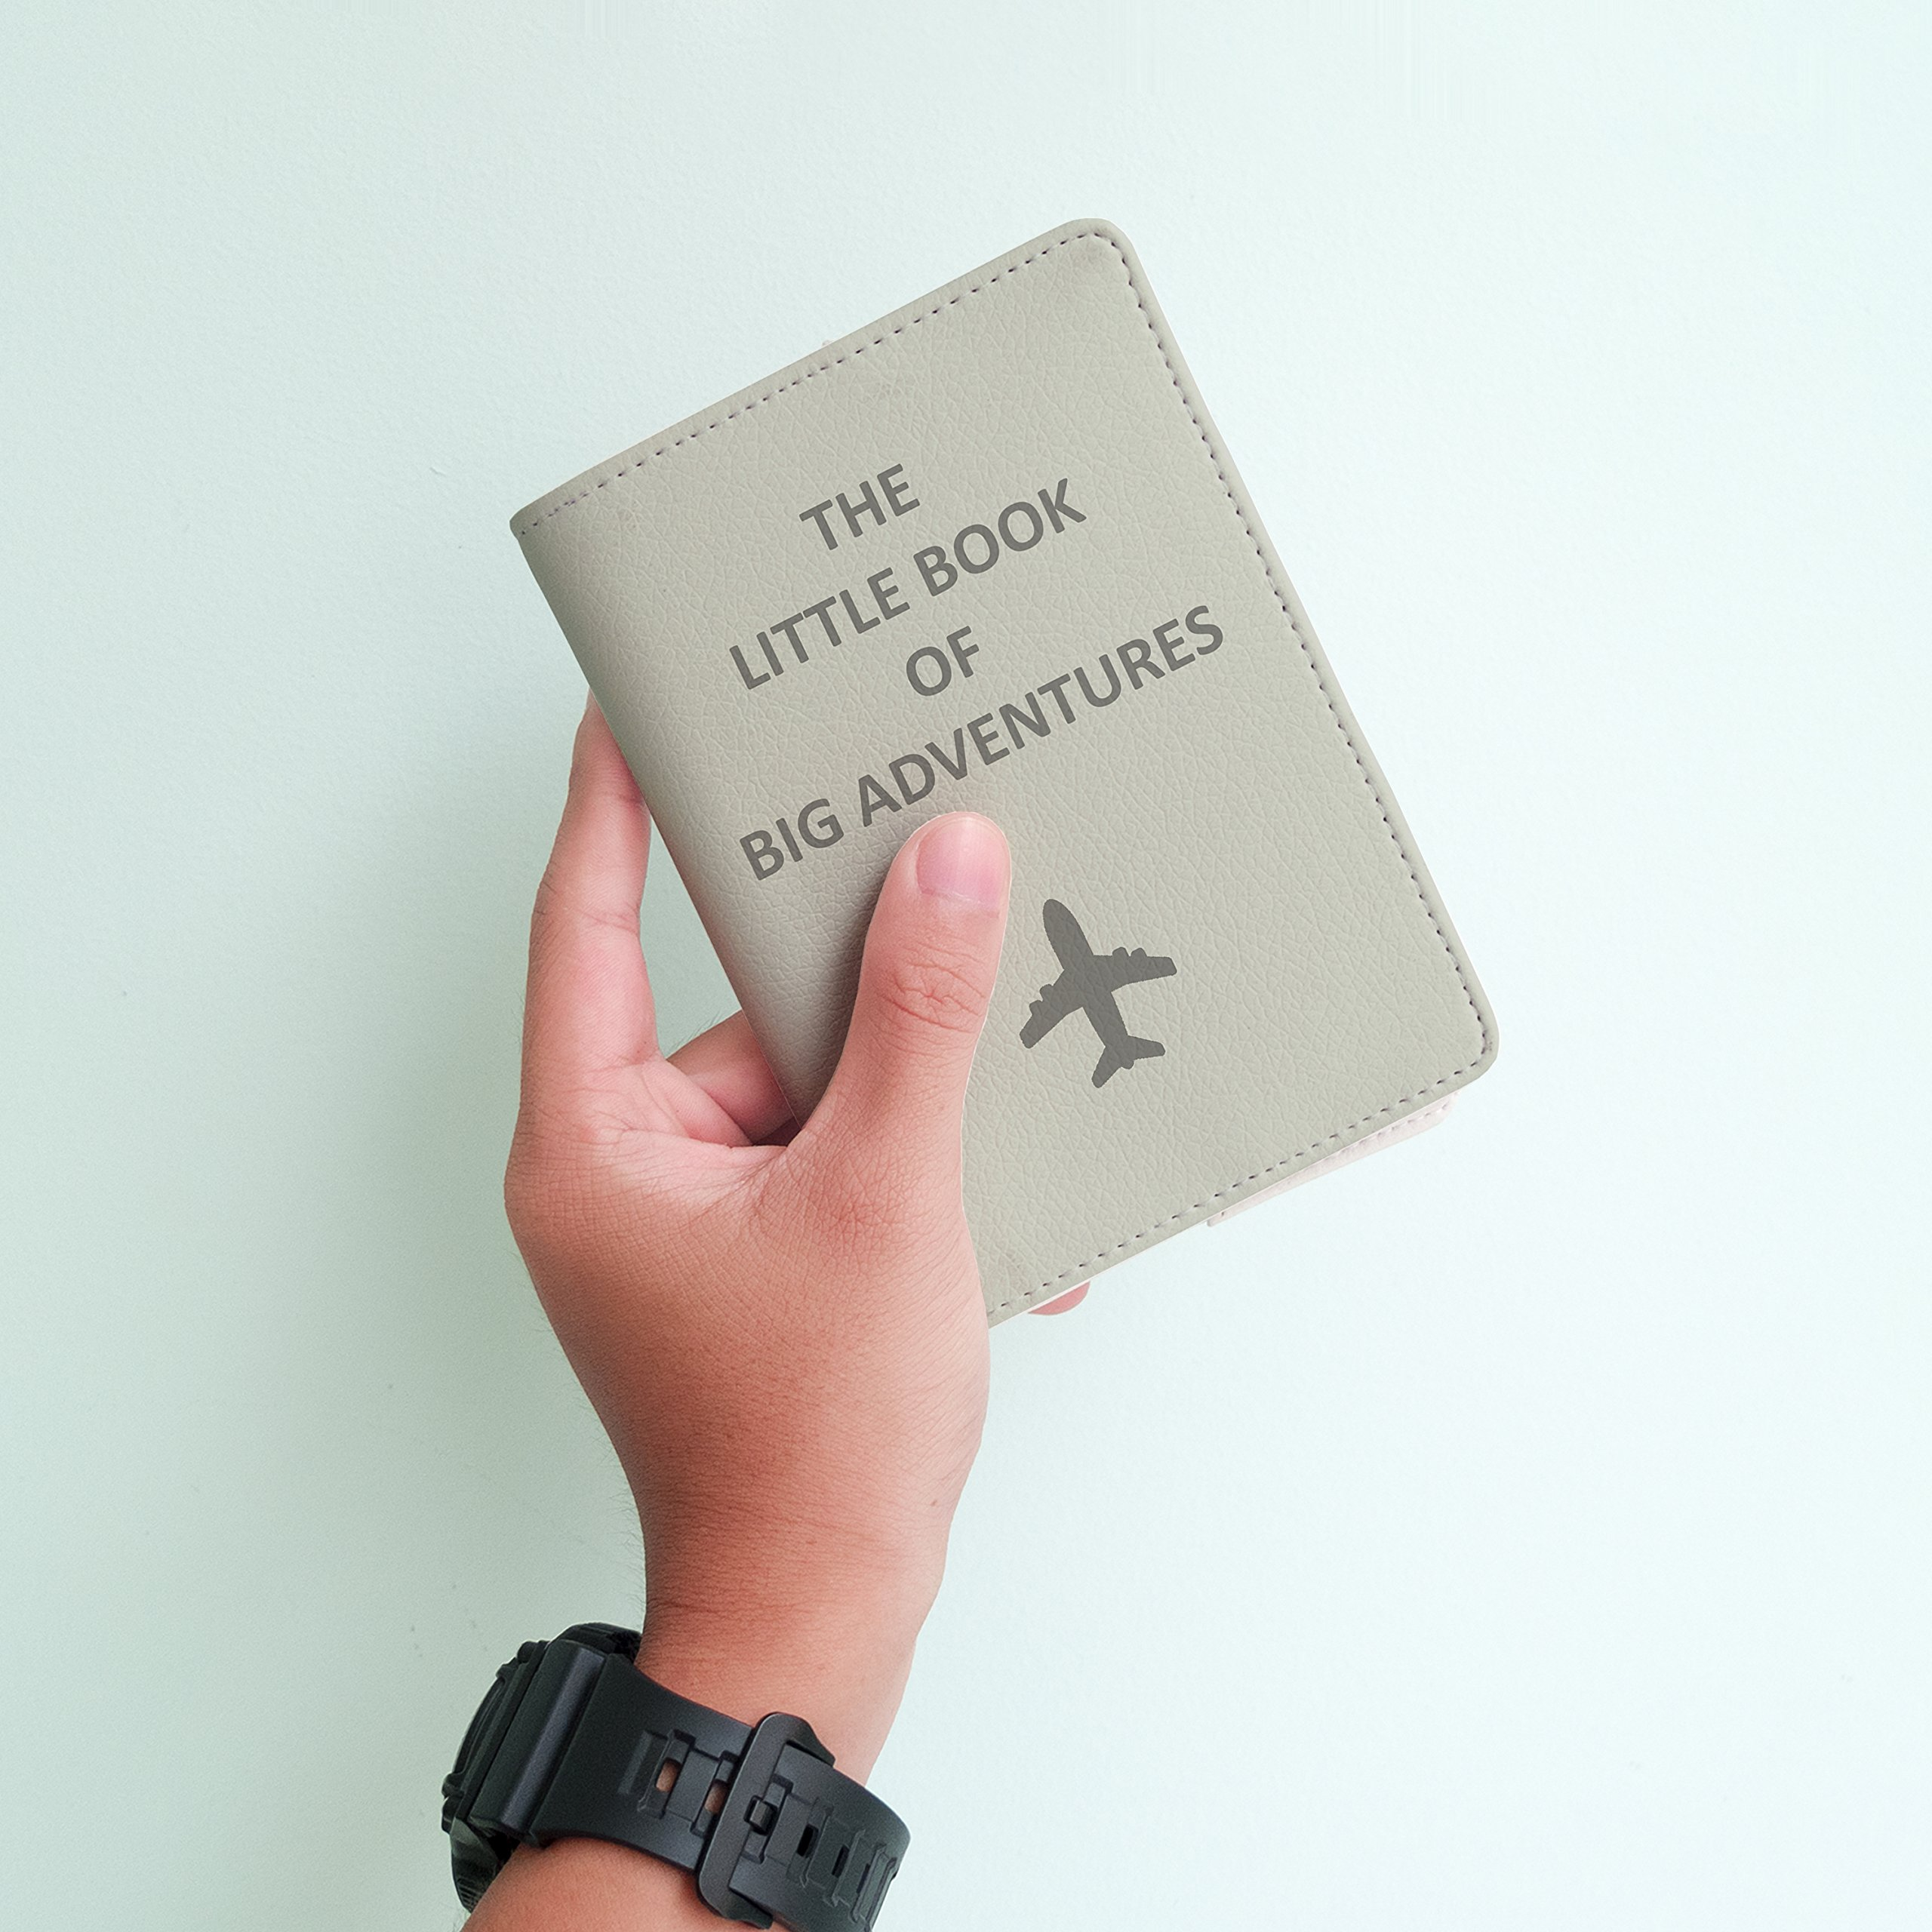 The Little Book Of Big Adventures - Multicolored by Handmade Curious (Image #3)